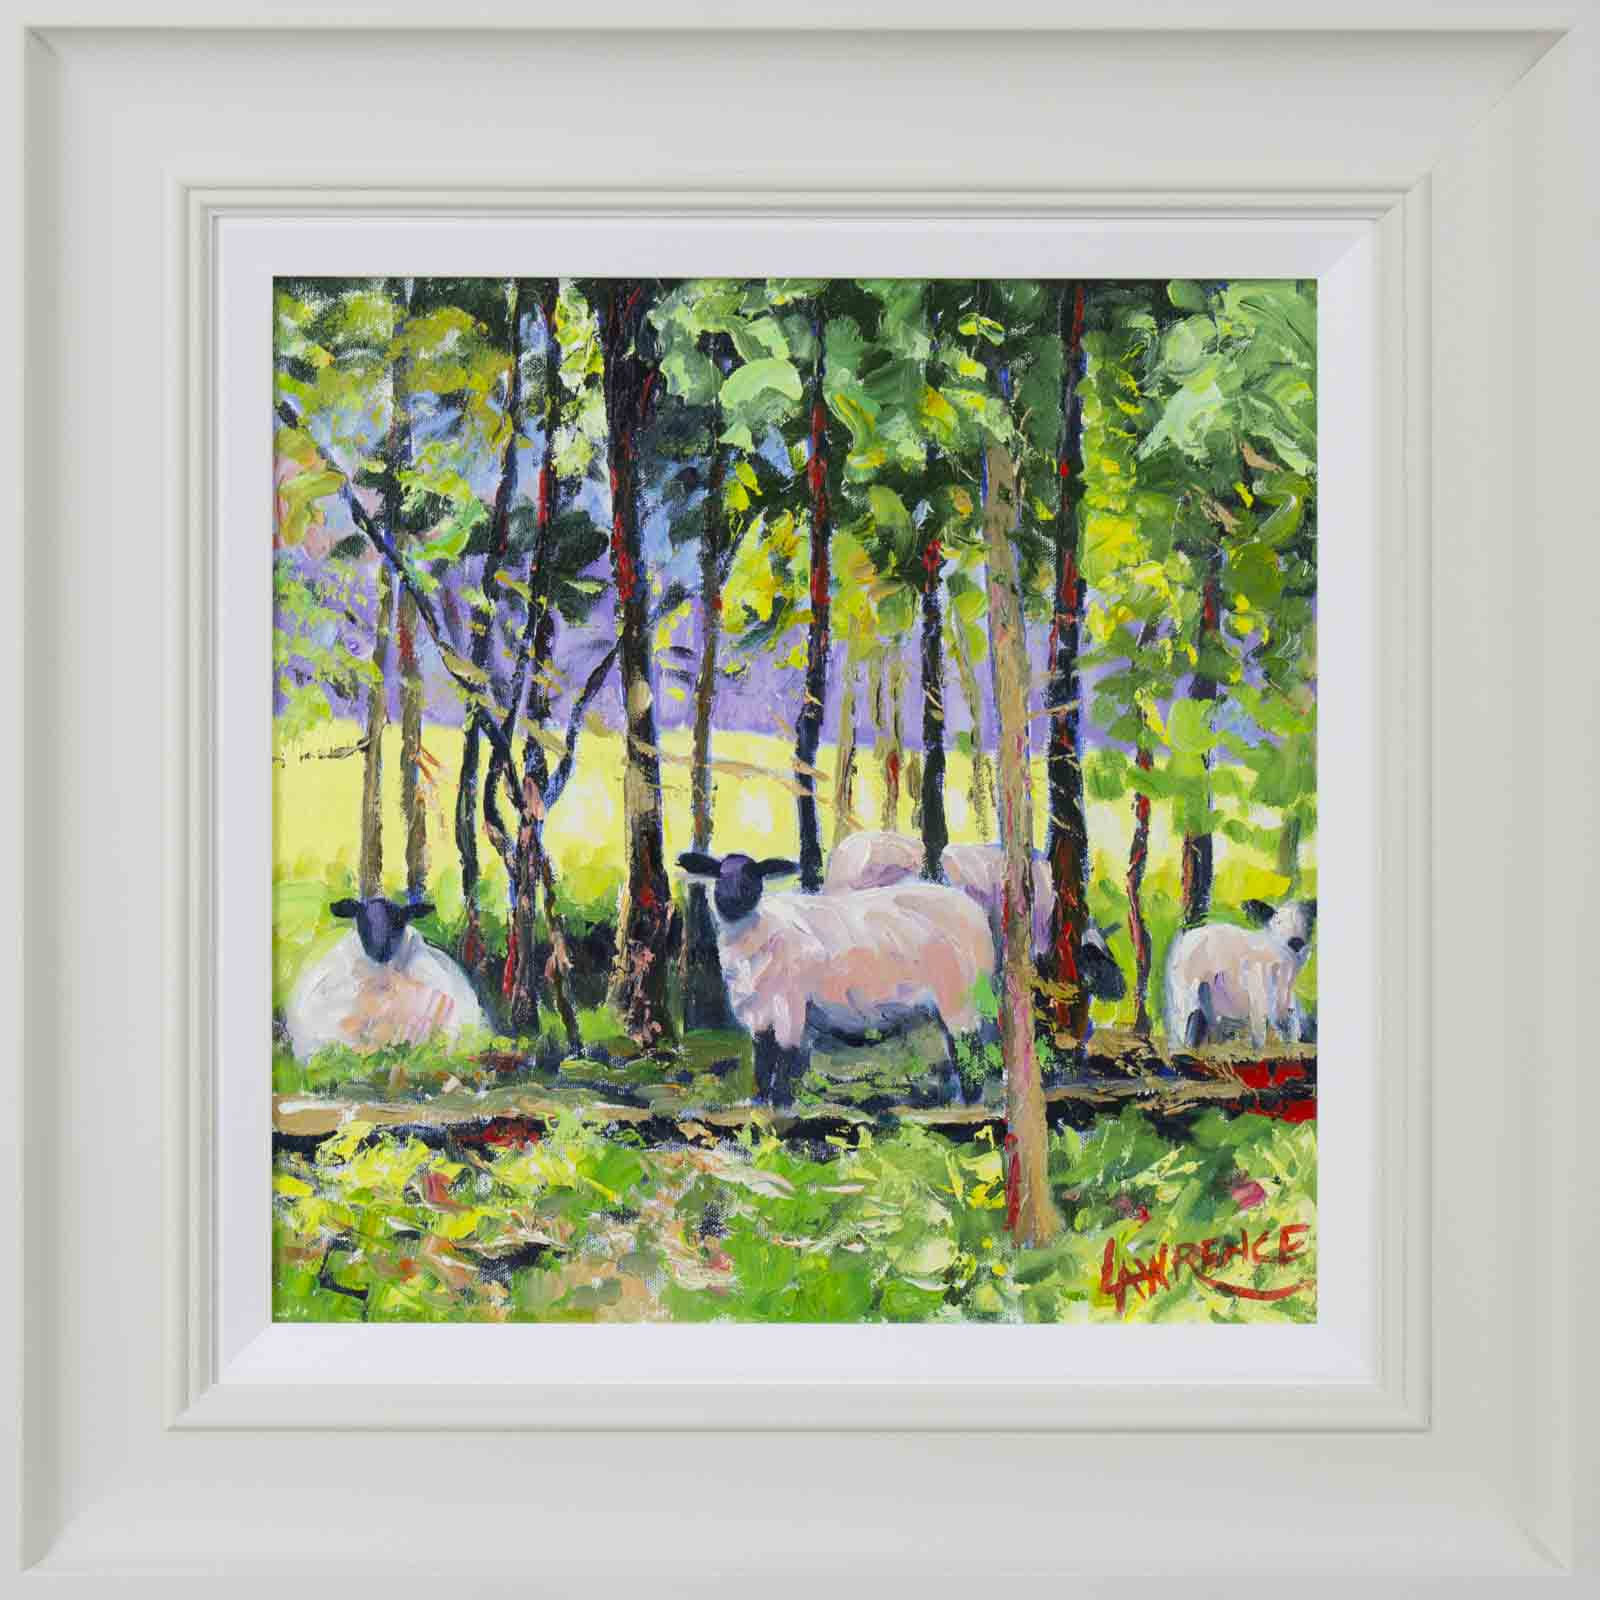 Sheep In The Glade